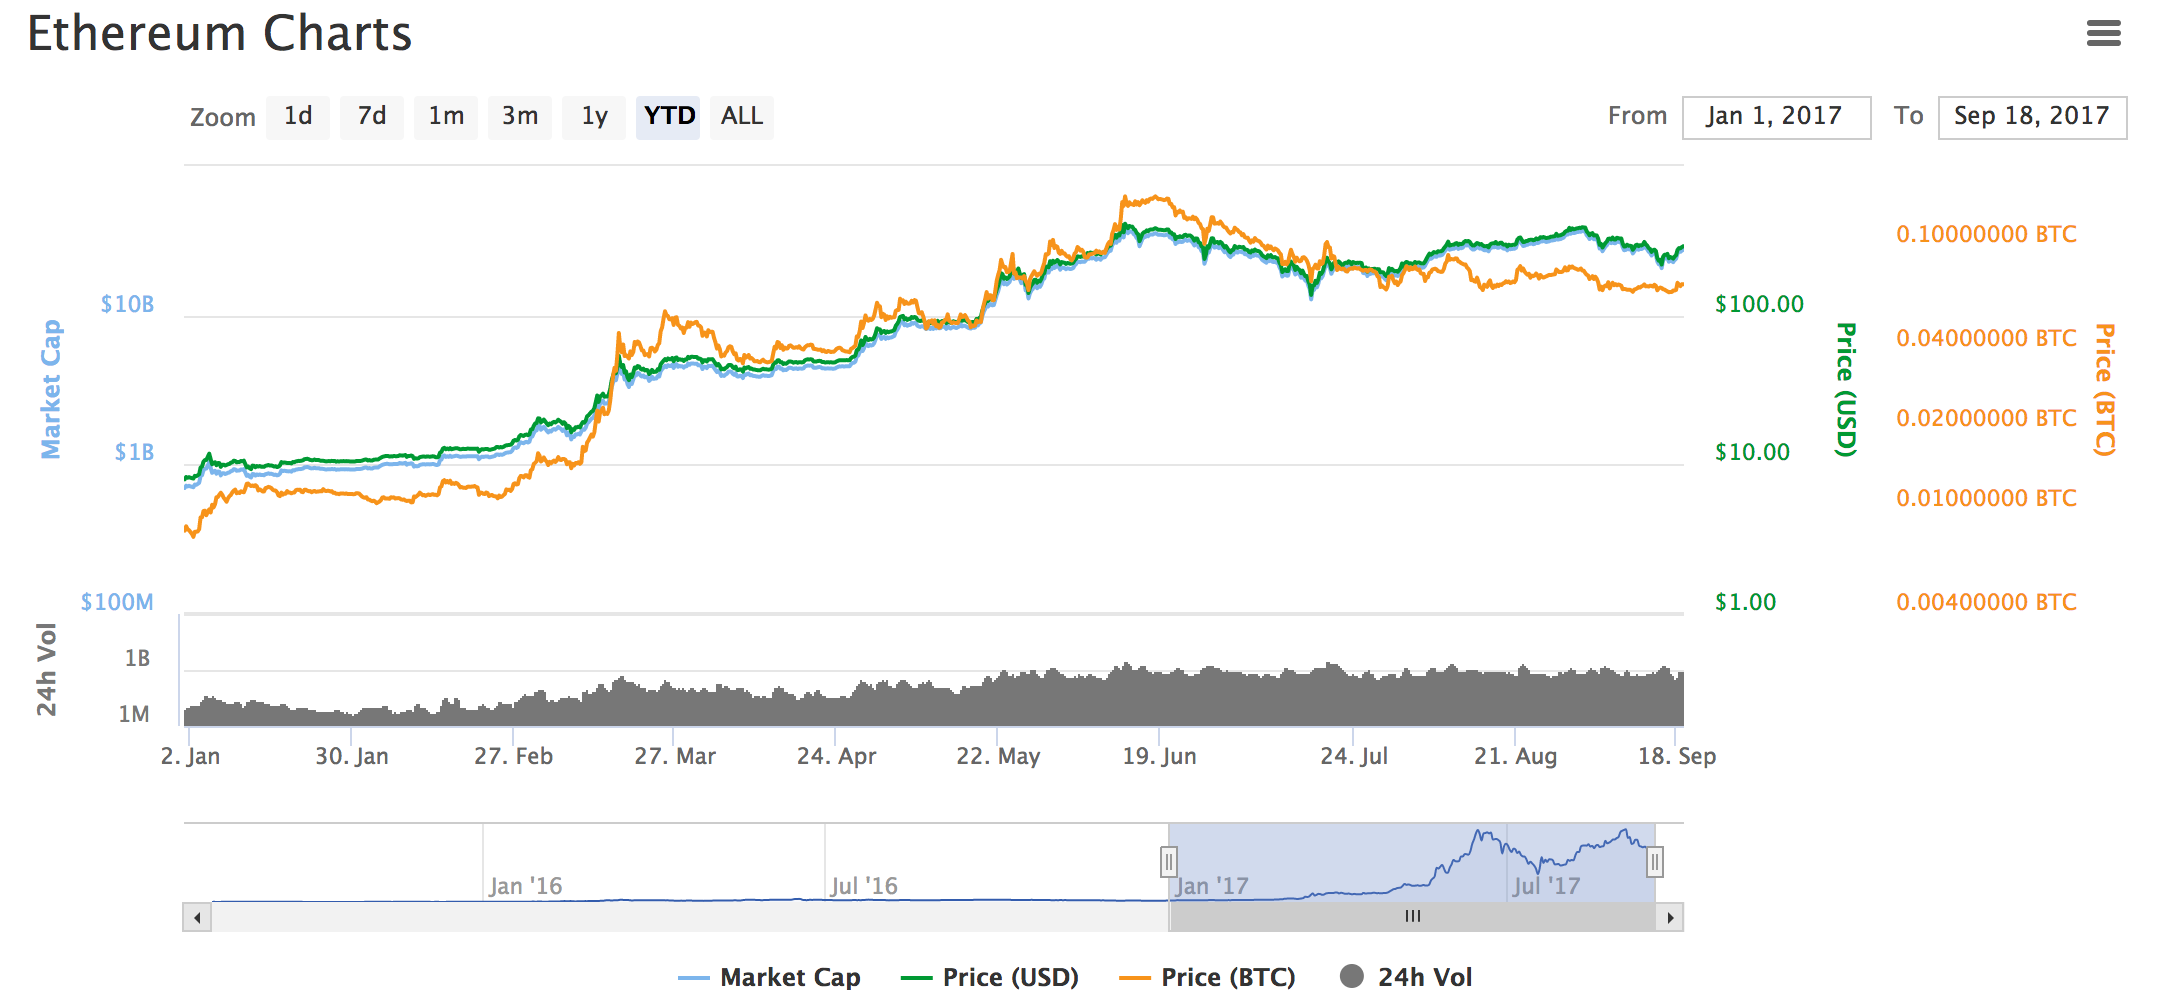 Coinmarketcap graph of Ethereum currently